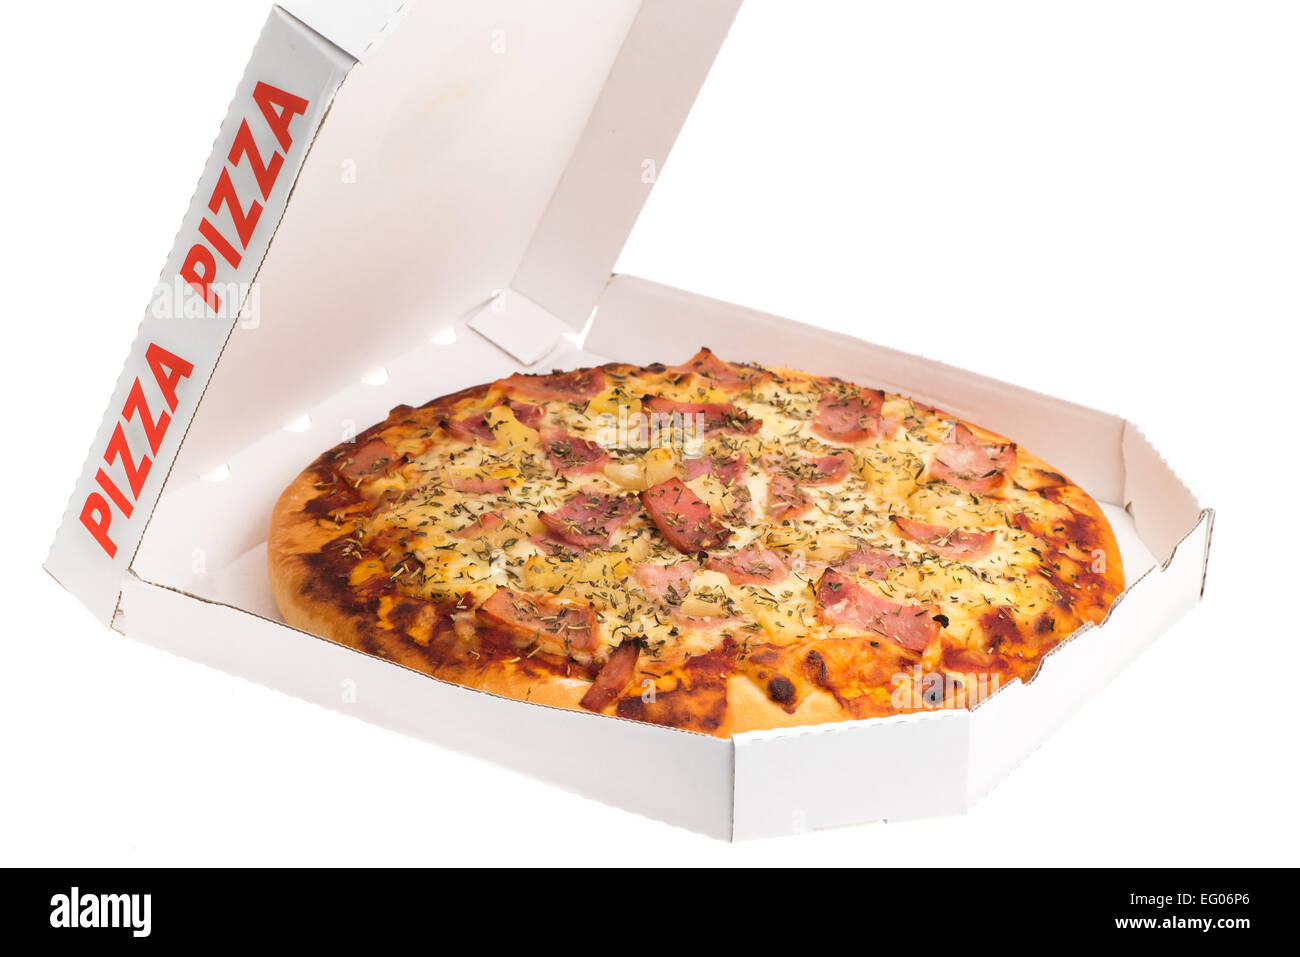 Take out box of a pineapple and ham Hawaiian pizza - studio shot with a white background - Stock Image